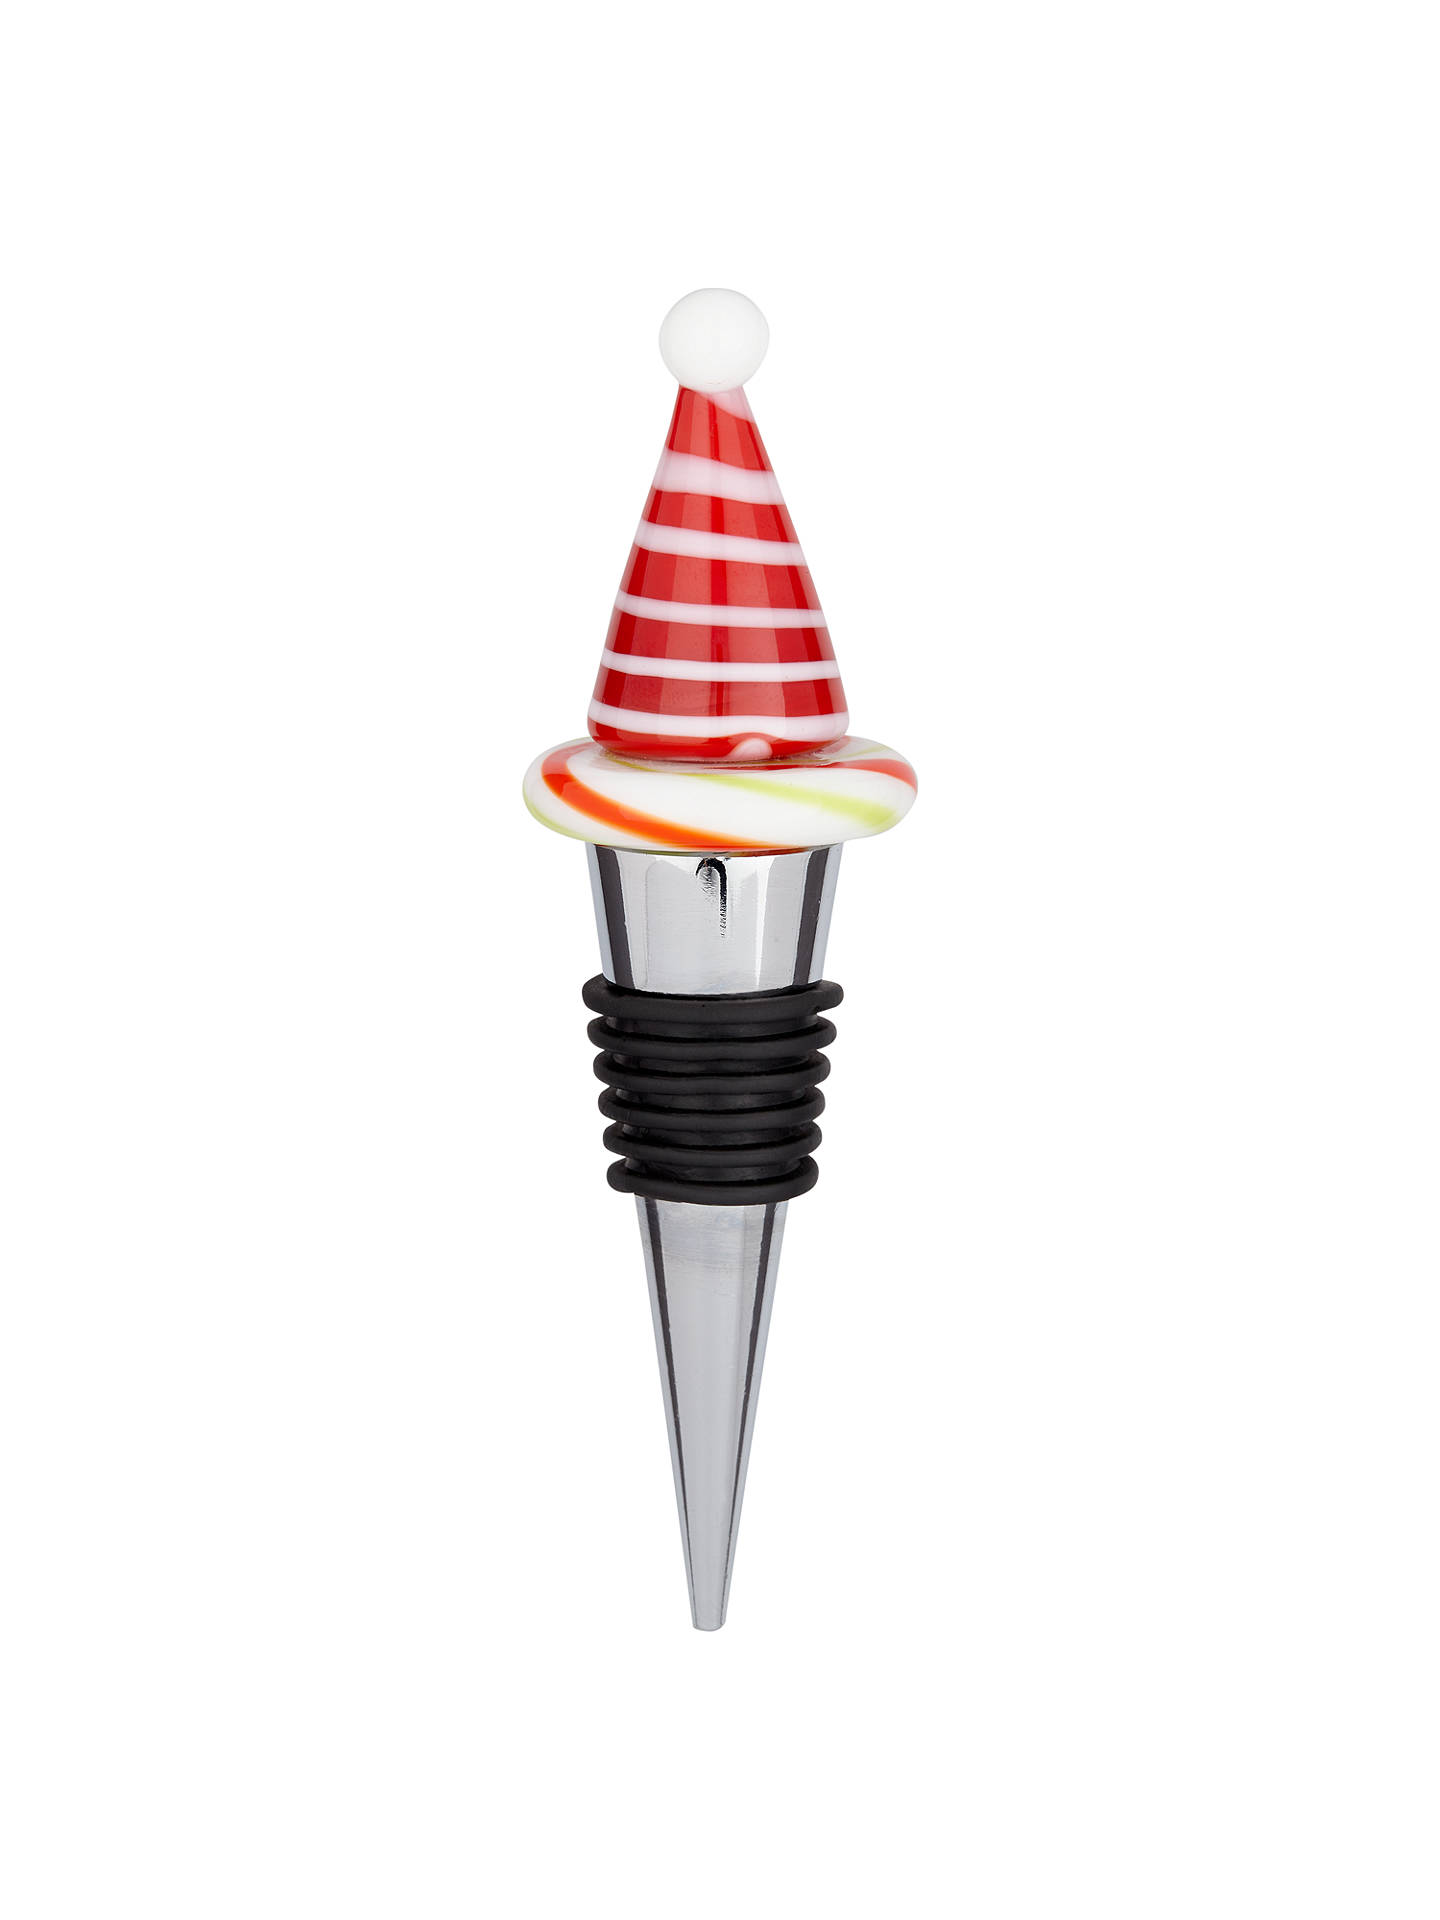 BuyJohn Lewis & Partners Christmas Hat Bottle Stopper Online at johnlewis.com